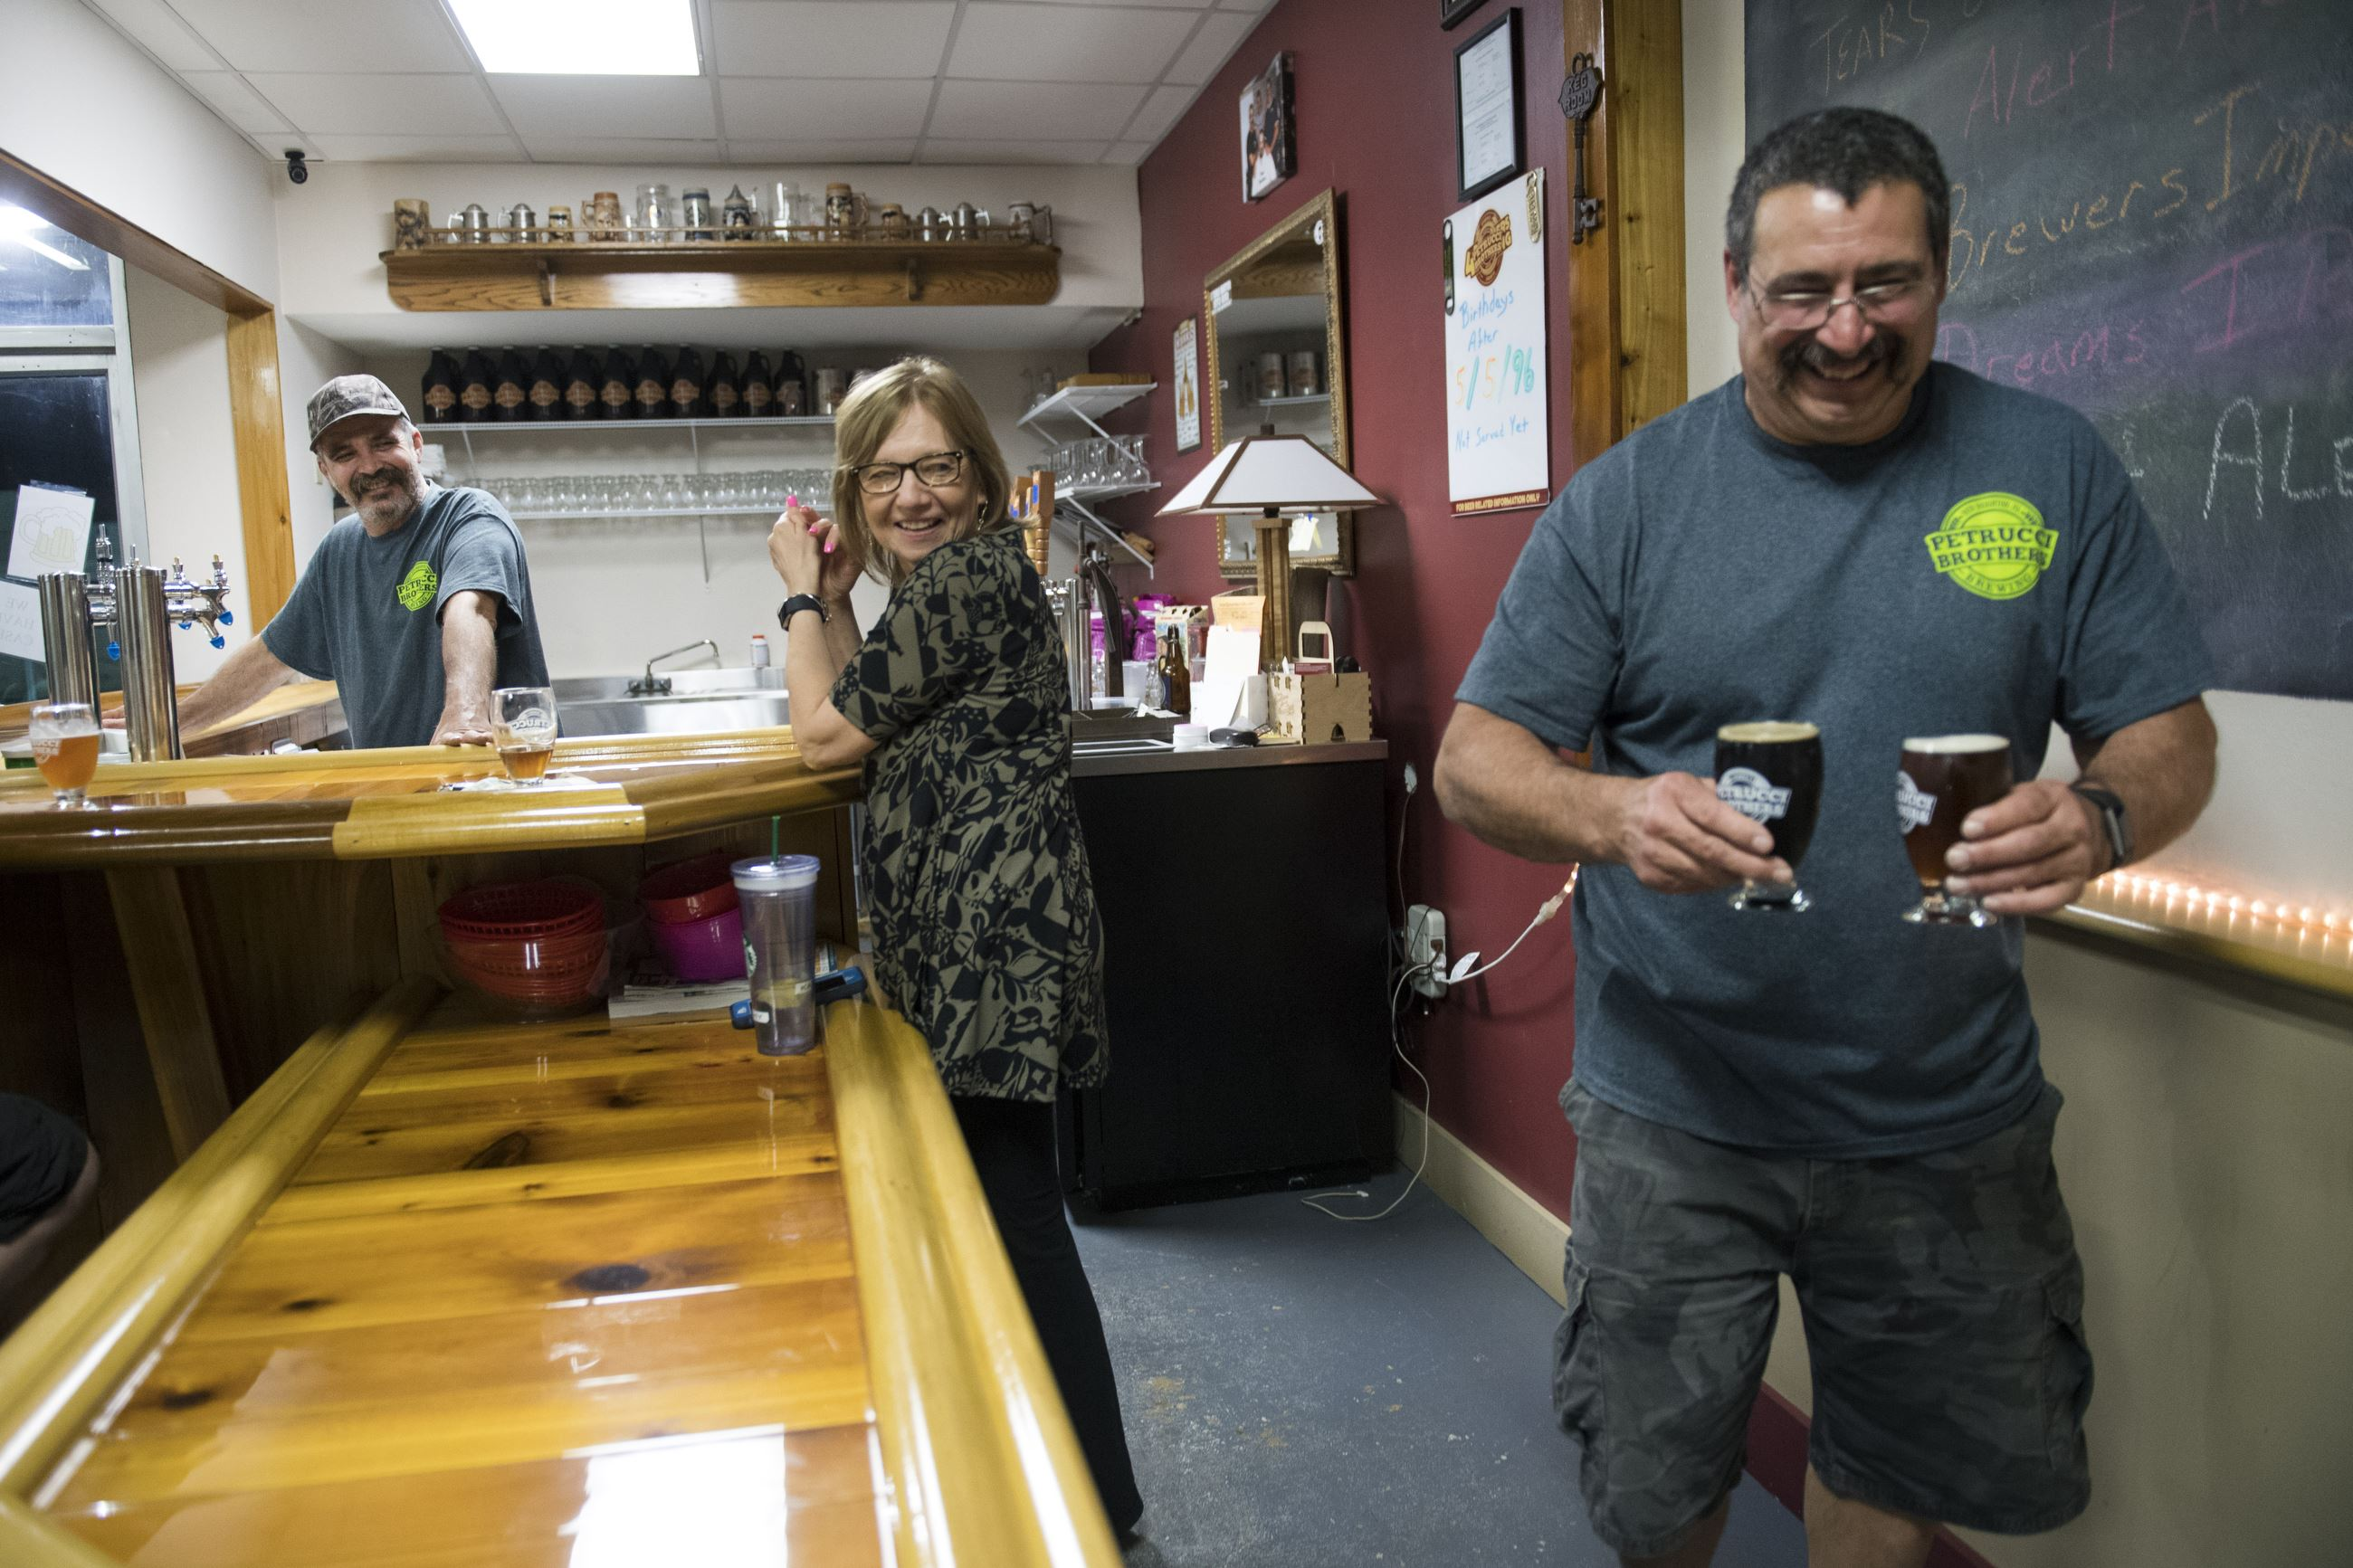 20170505scPetrucci-05-10 Co-owners Steve Petrucci, Kathy Petrucci and Dave Petrucci smiles as they serve their guests on Friday, May 5, 2017 at Petrucci Brothers Brewing in New Brighton.